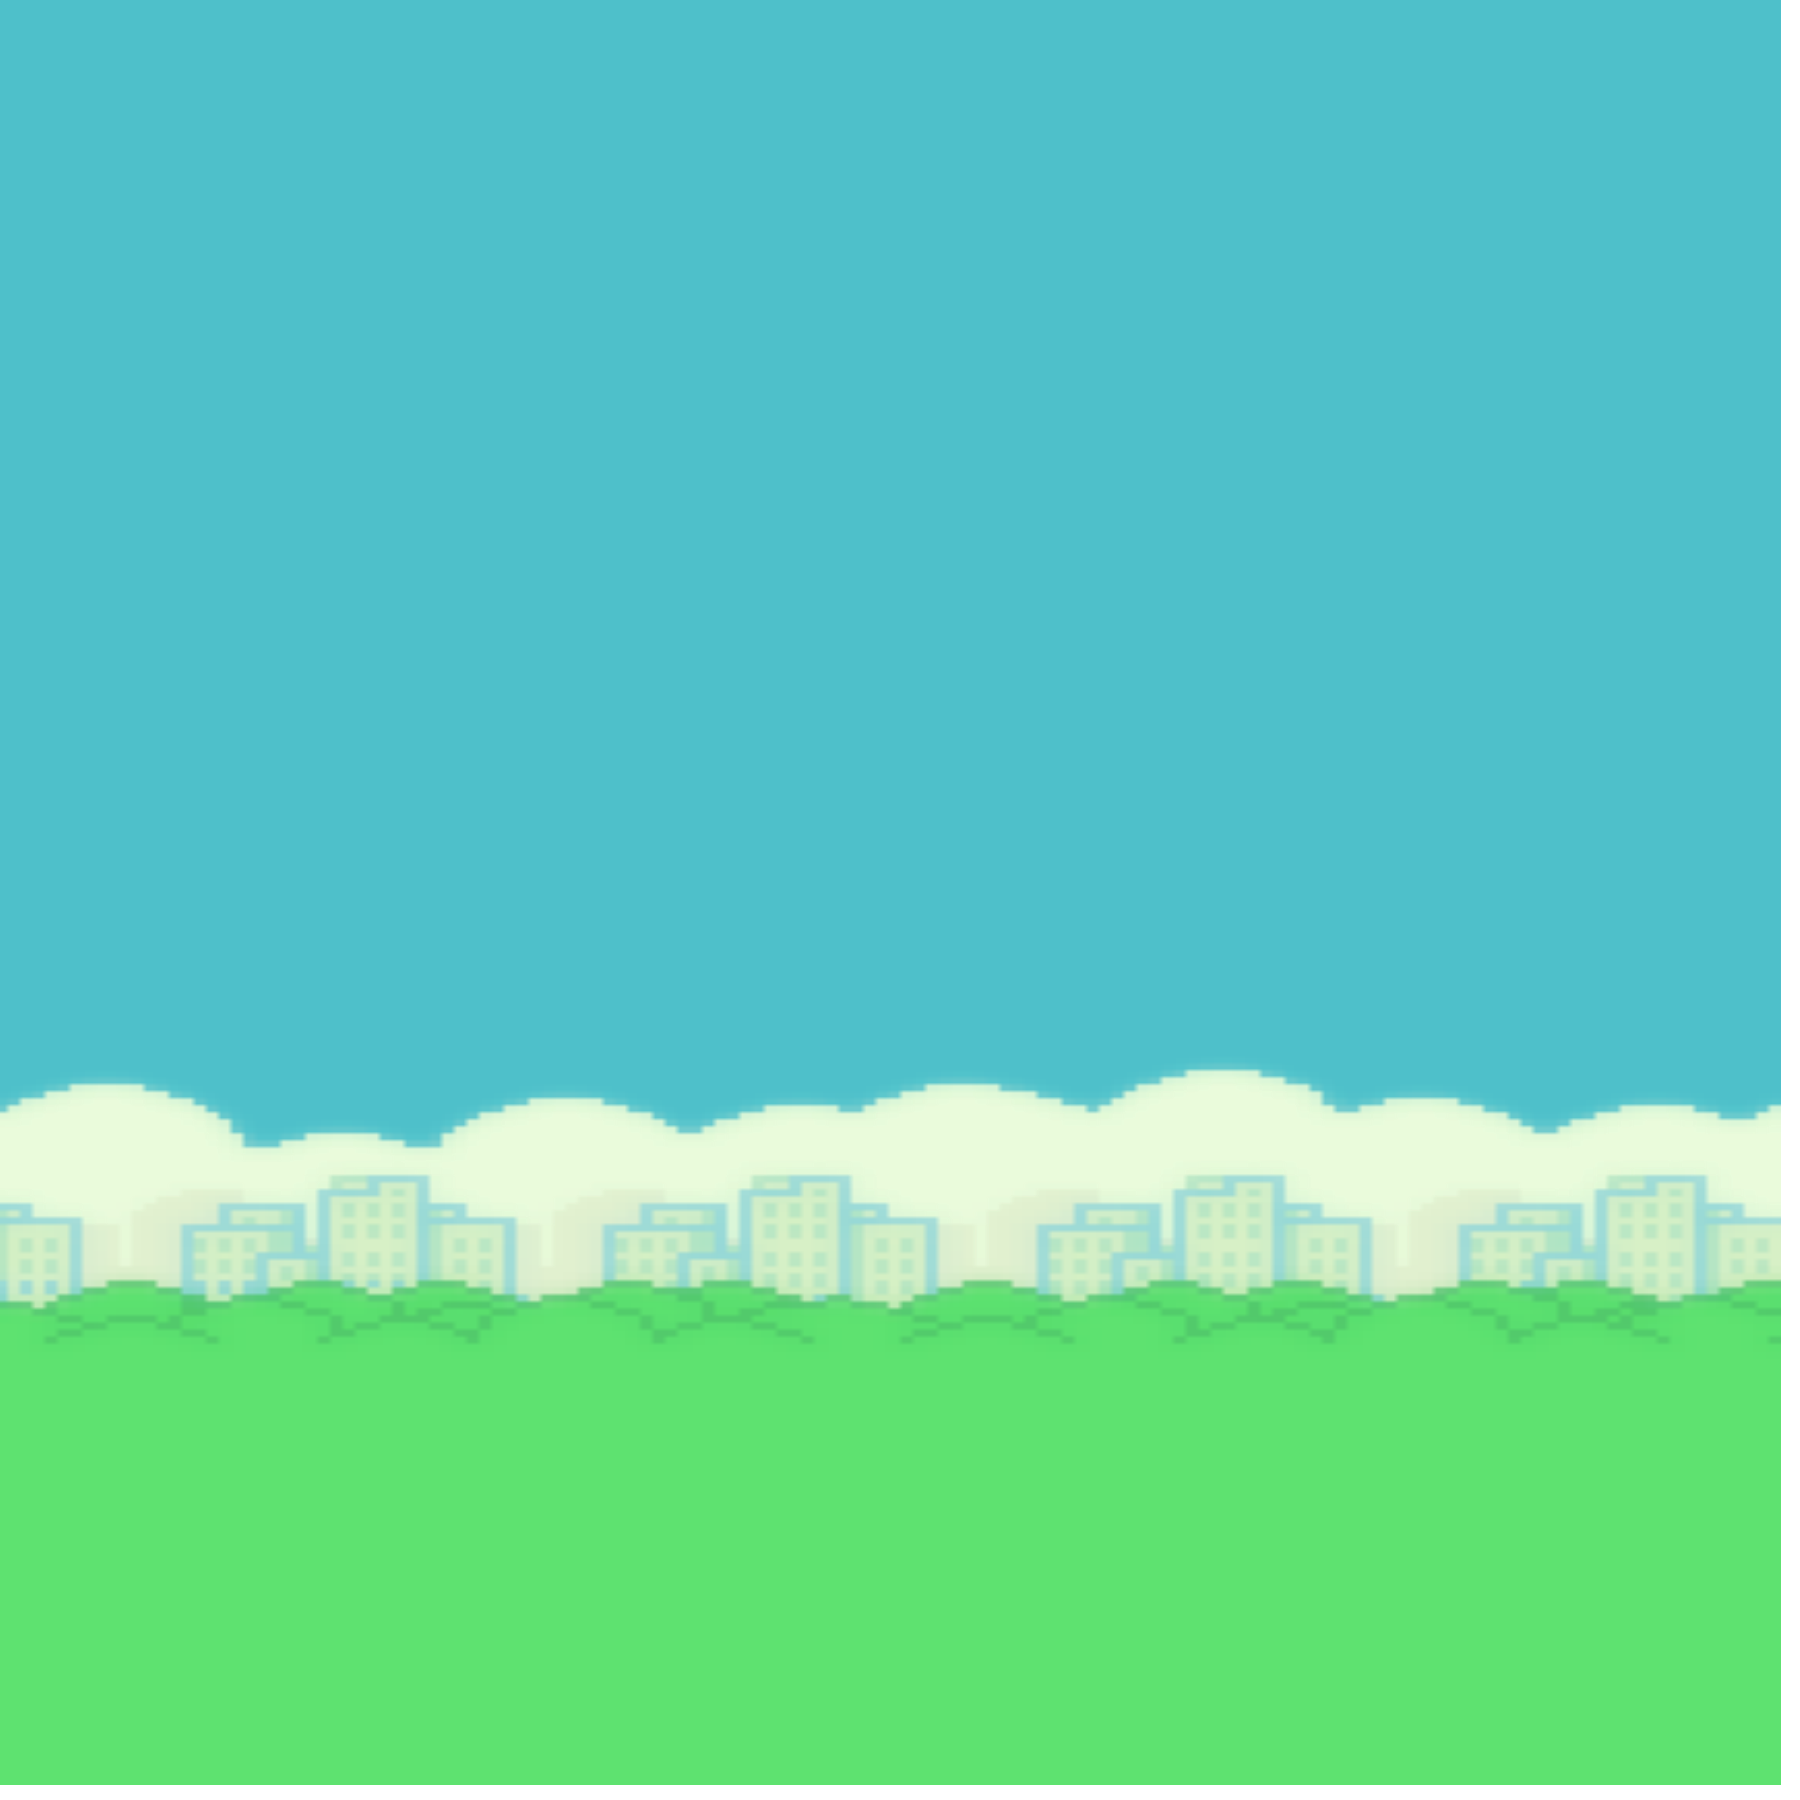 Flappy bird background png 5 » PNG Image.